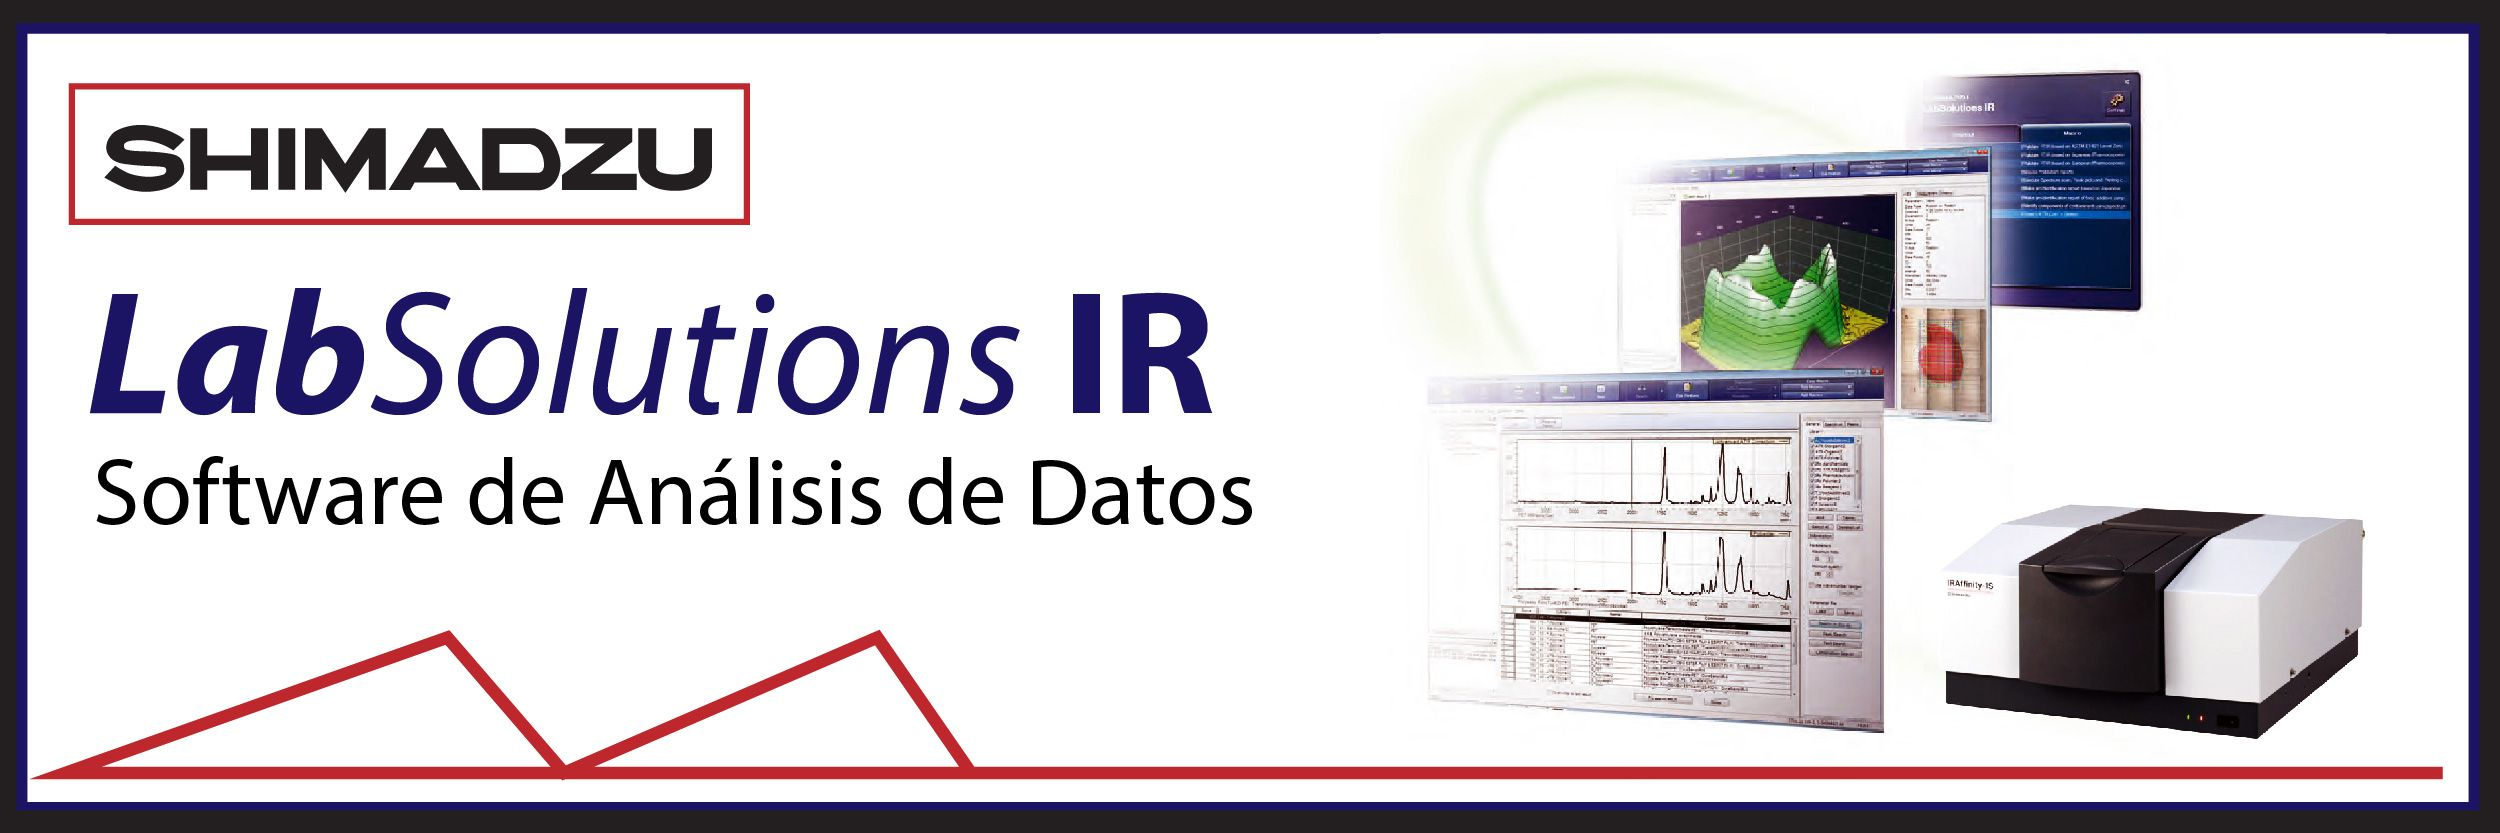 LabSolutions IR: Software de análisis de datos para FTIR